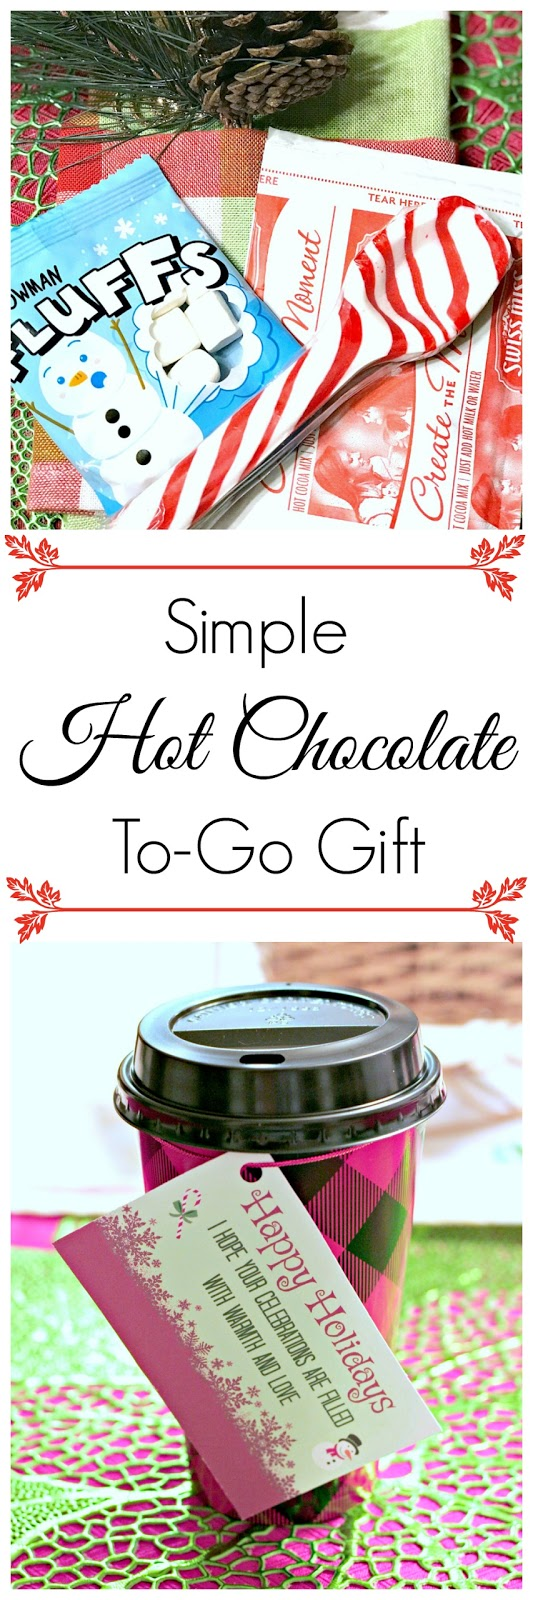 Hot chocolate to go gift, printable gift tags for hot chocolate, hot chocolate printable tag, buffalo plaid coffee cups, oriental trading savings, oriental trading holiday gifts